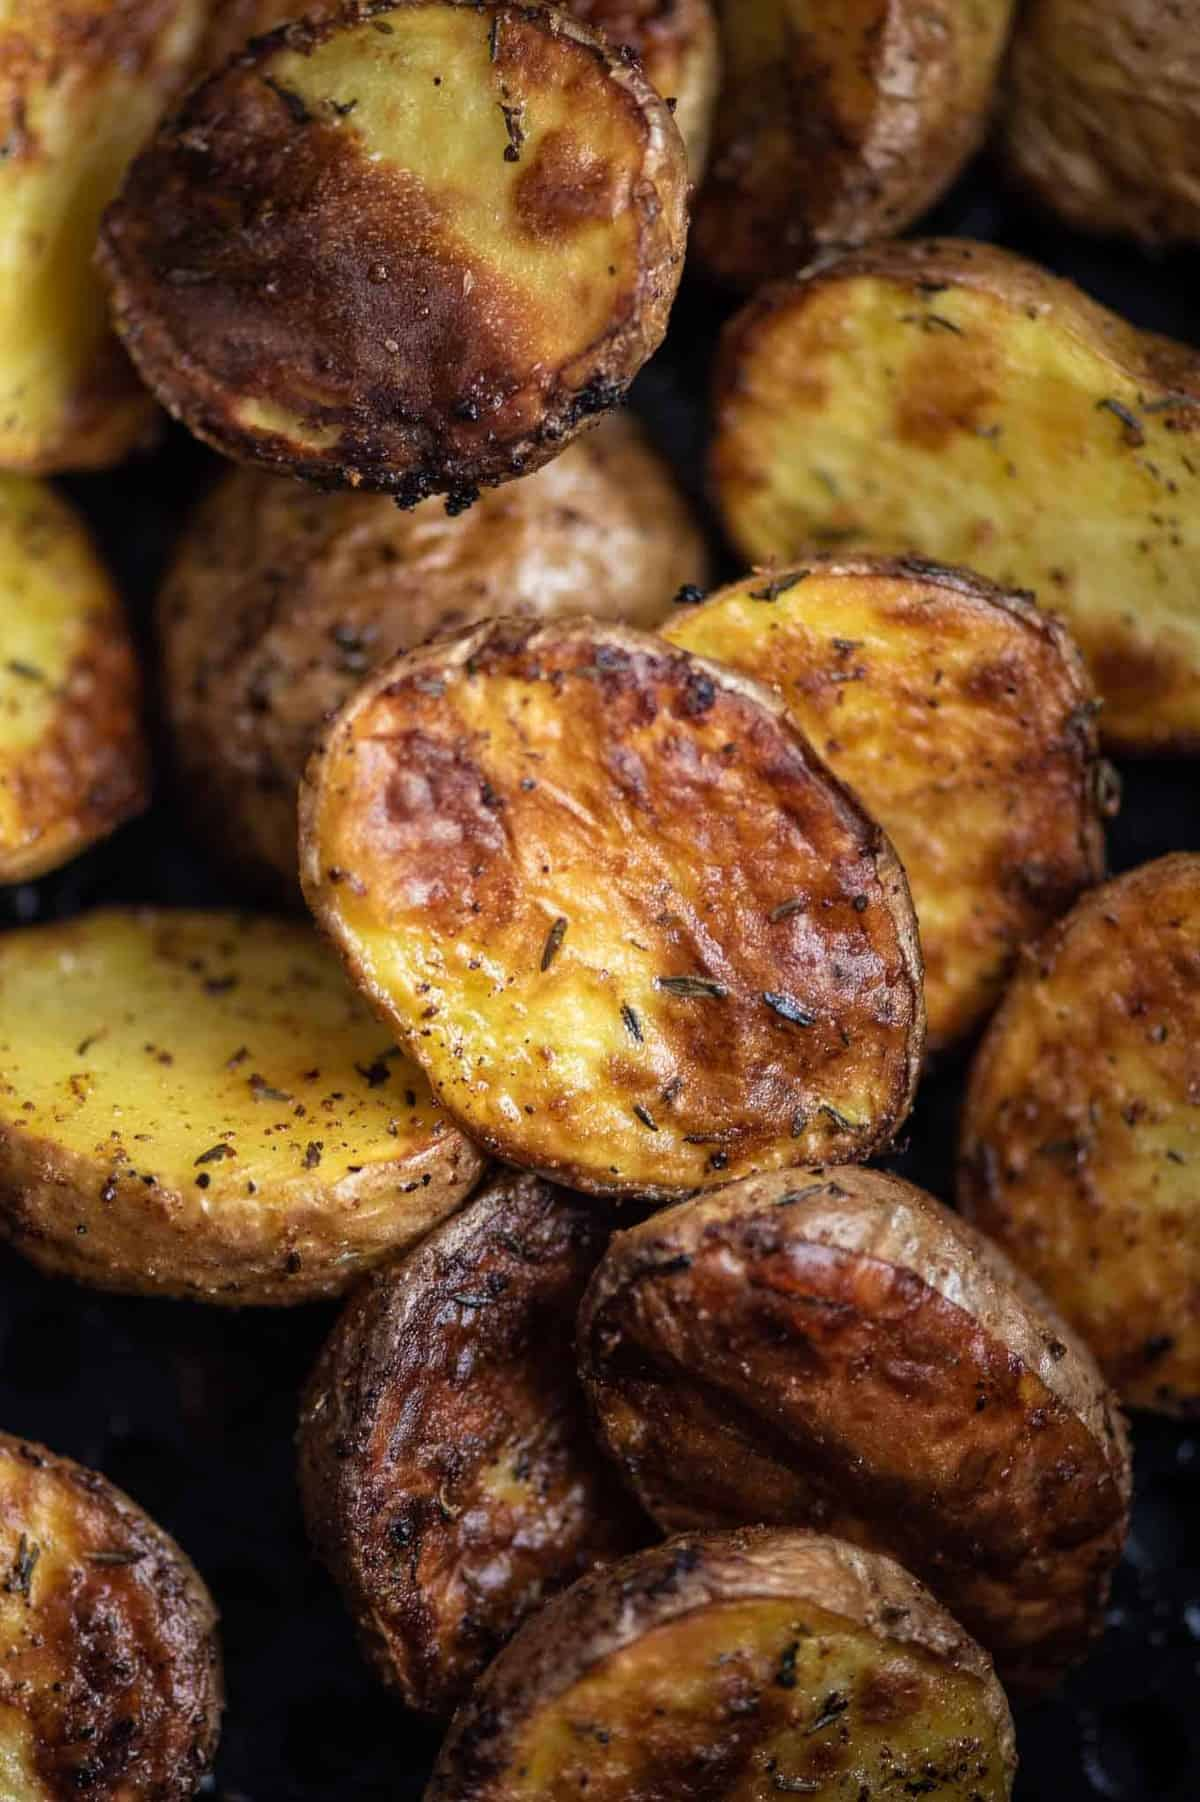 roasted potatoes up close image